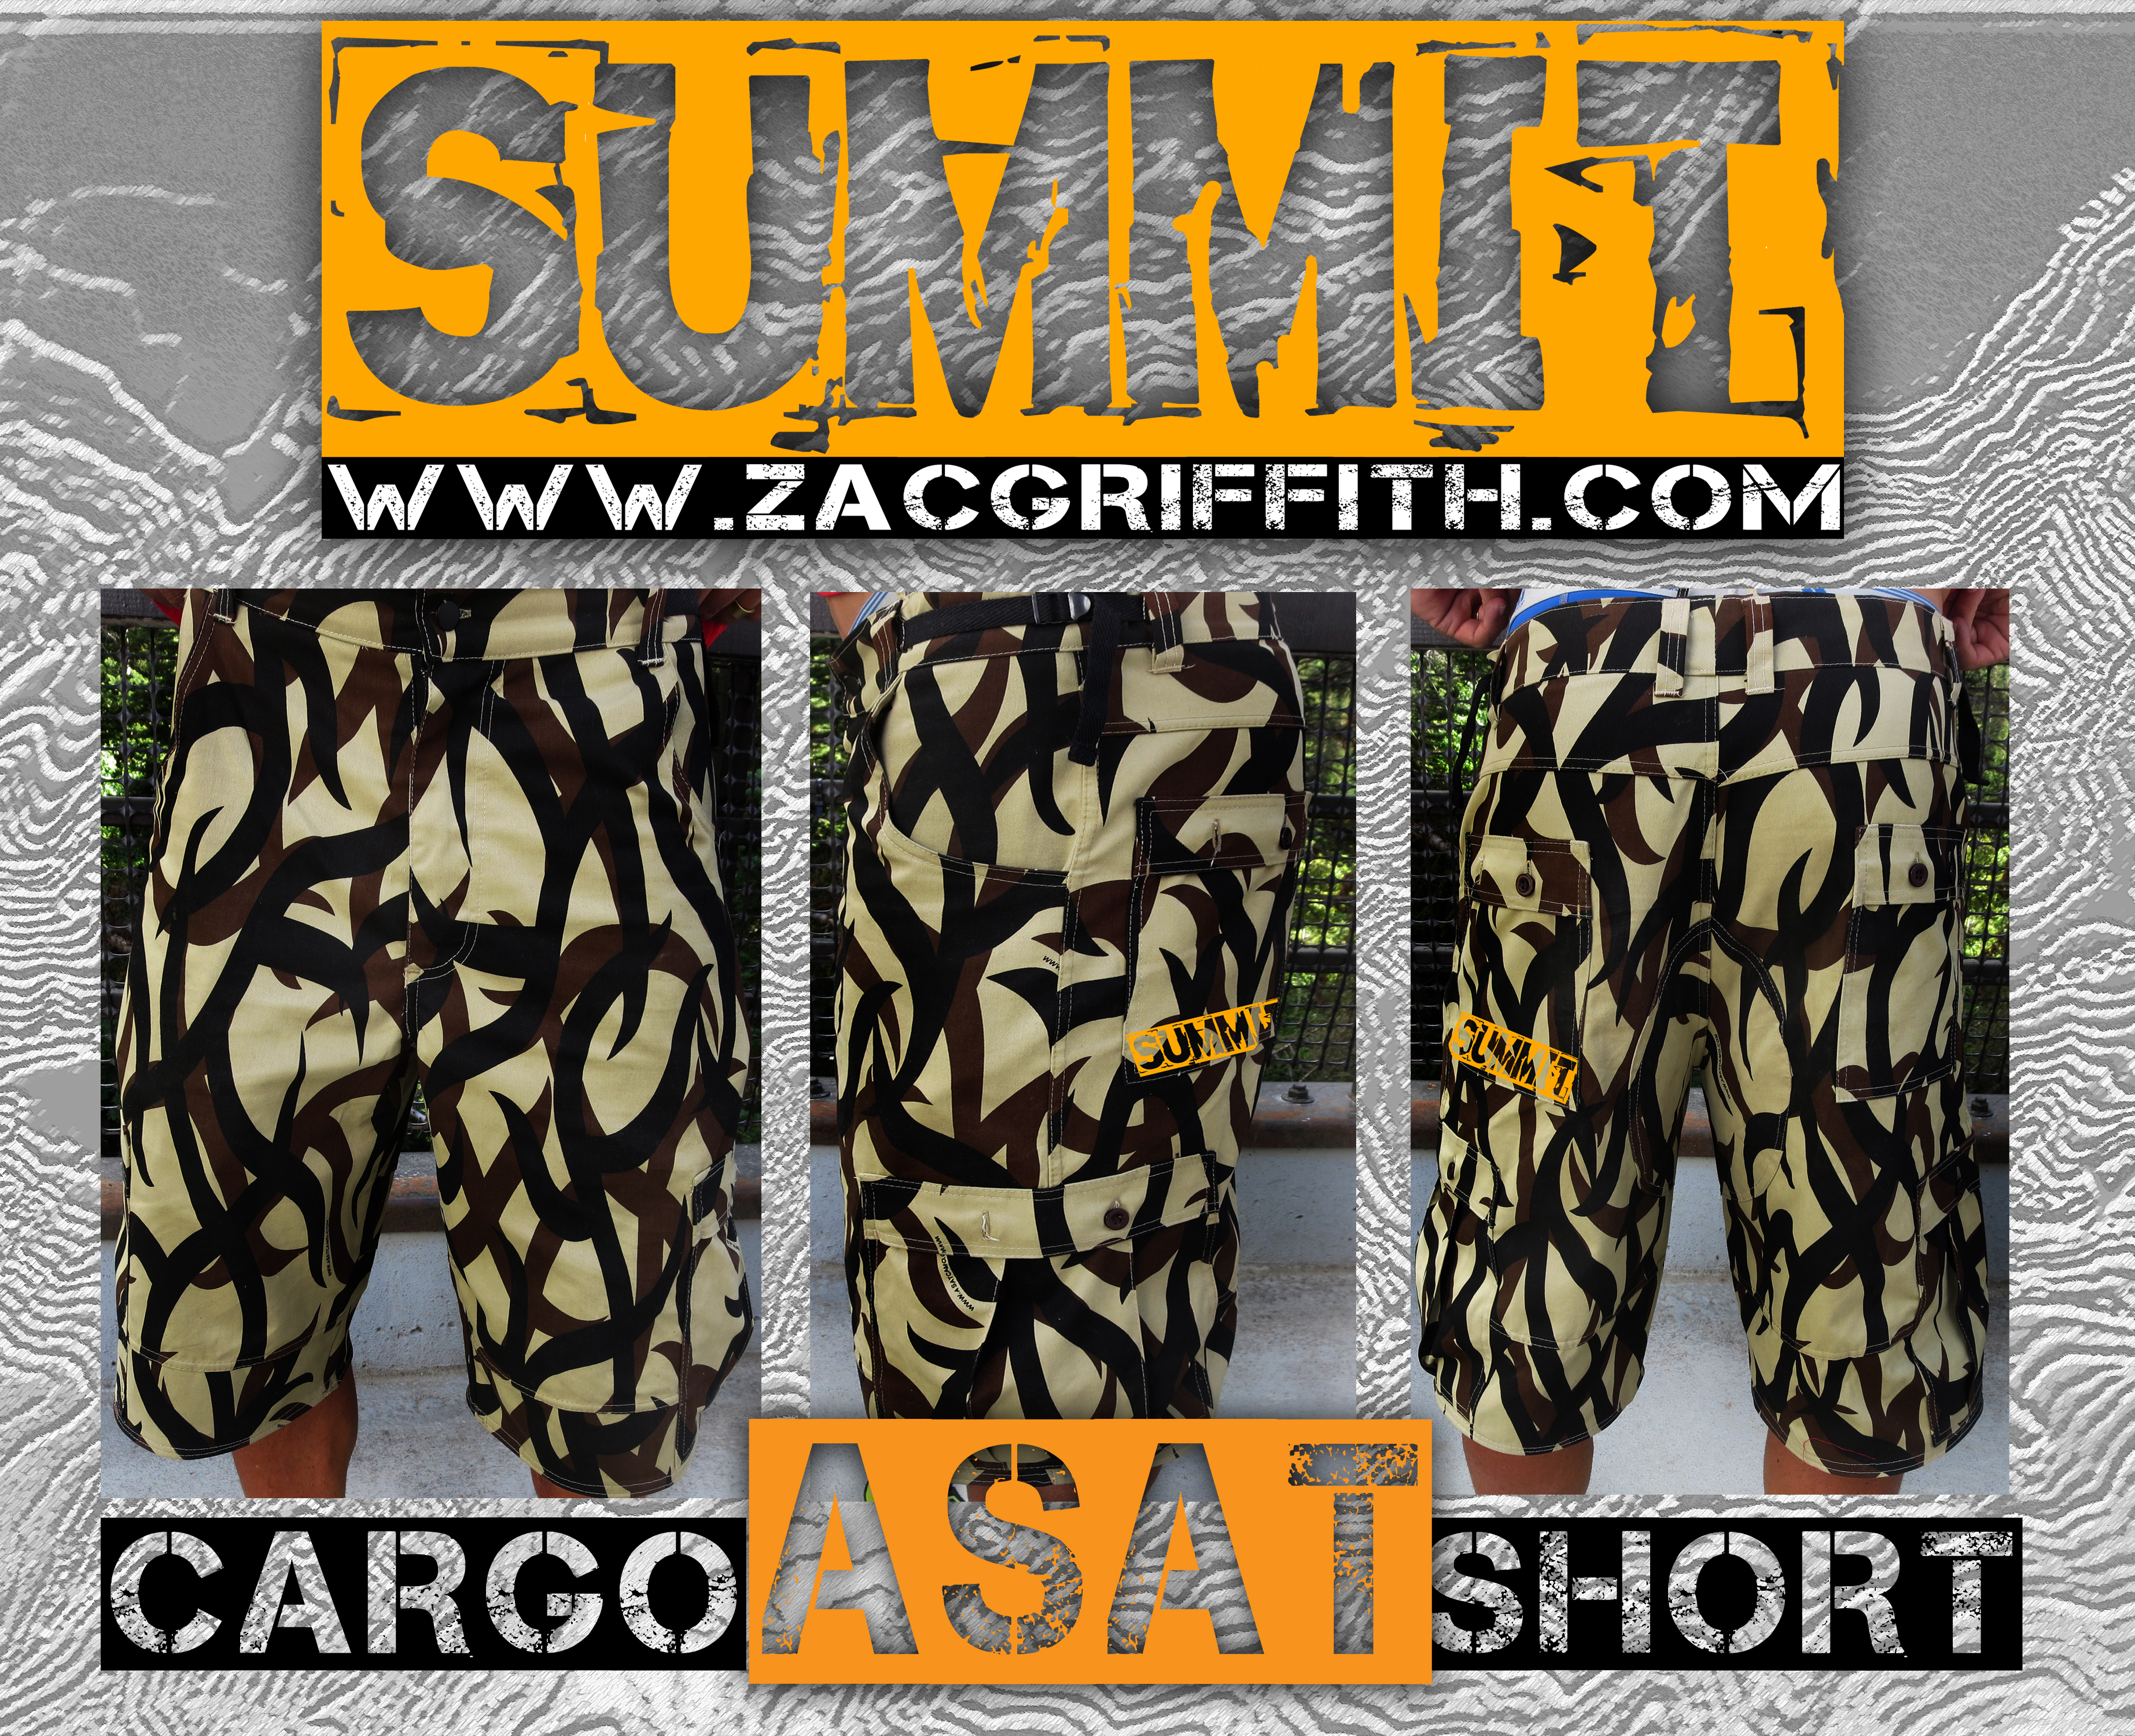 SUMMIT ASAT SHORT